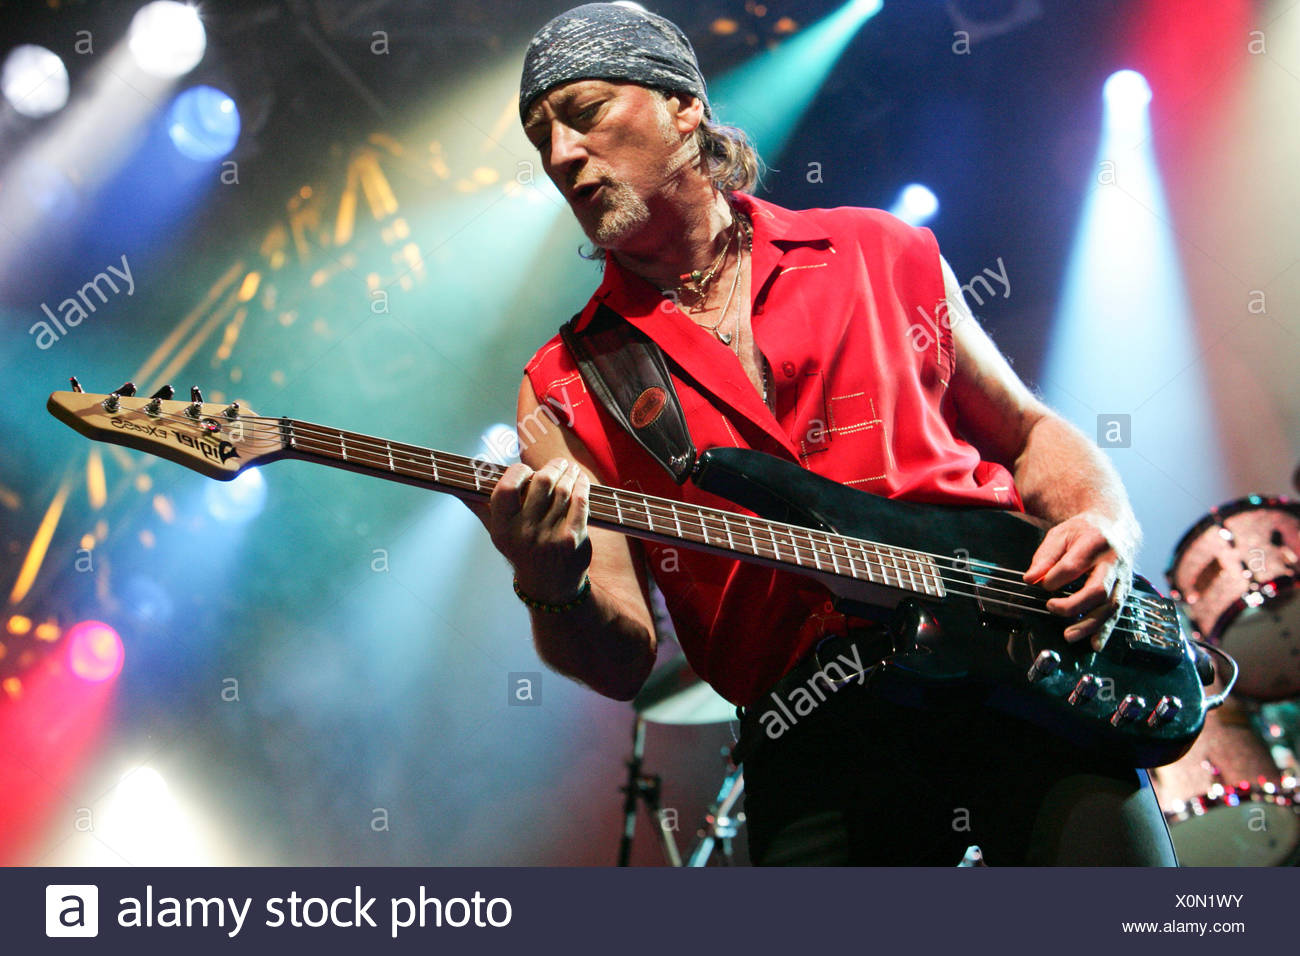 Roger Glover, bassist of the British rock band Deep Purple live at the Spirit of Music open air festival in Uster, Zurich - Stock Image